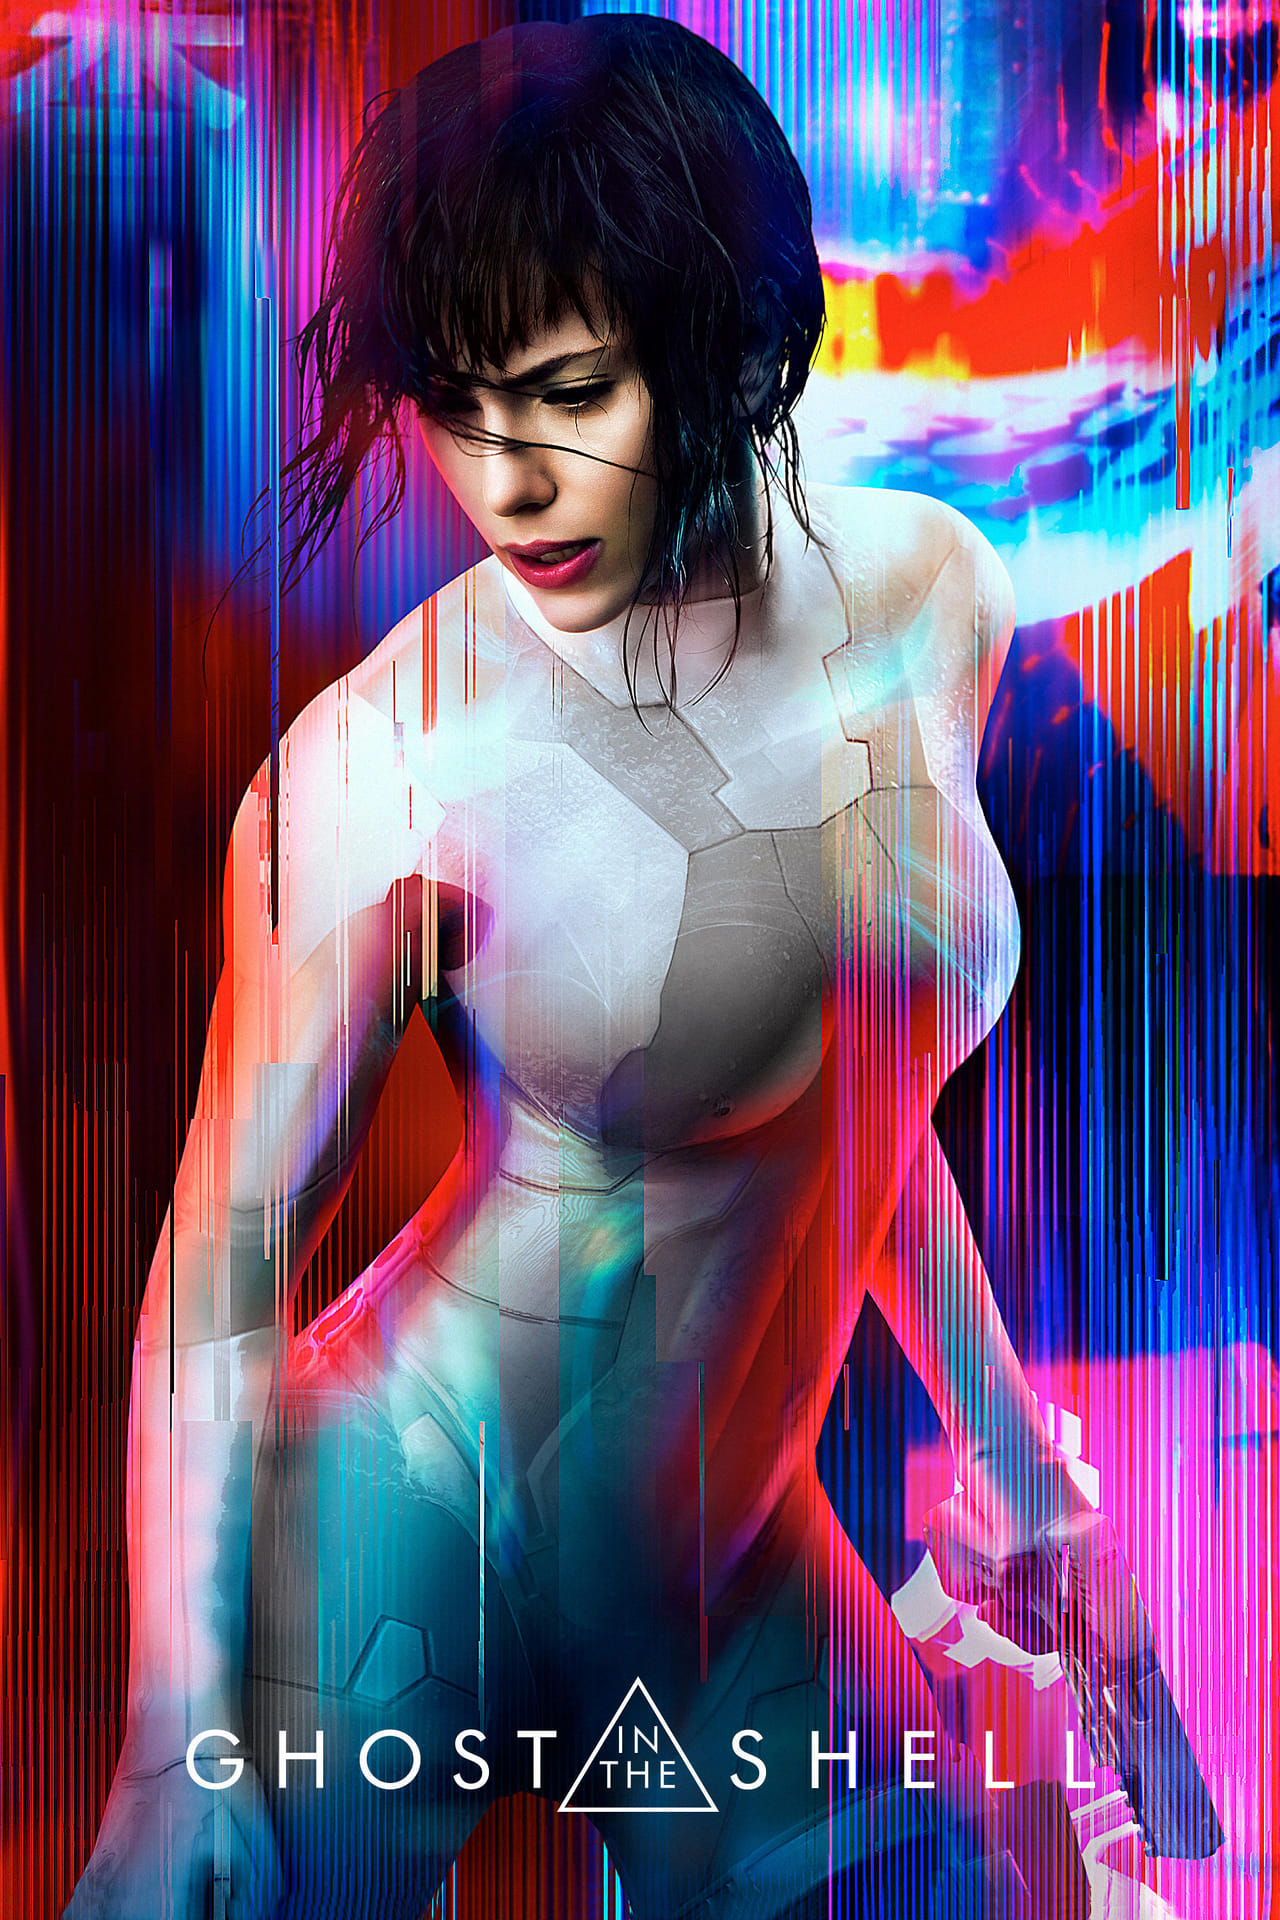 [Watch] Full Movie Ghost in the Shell (2017) Online Free megashare